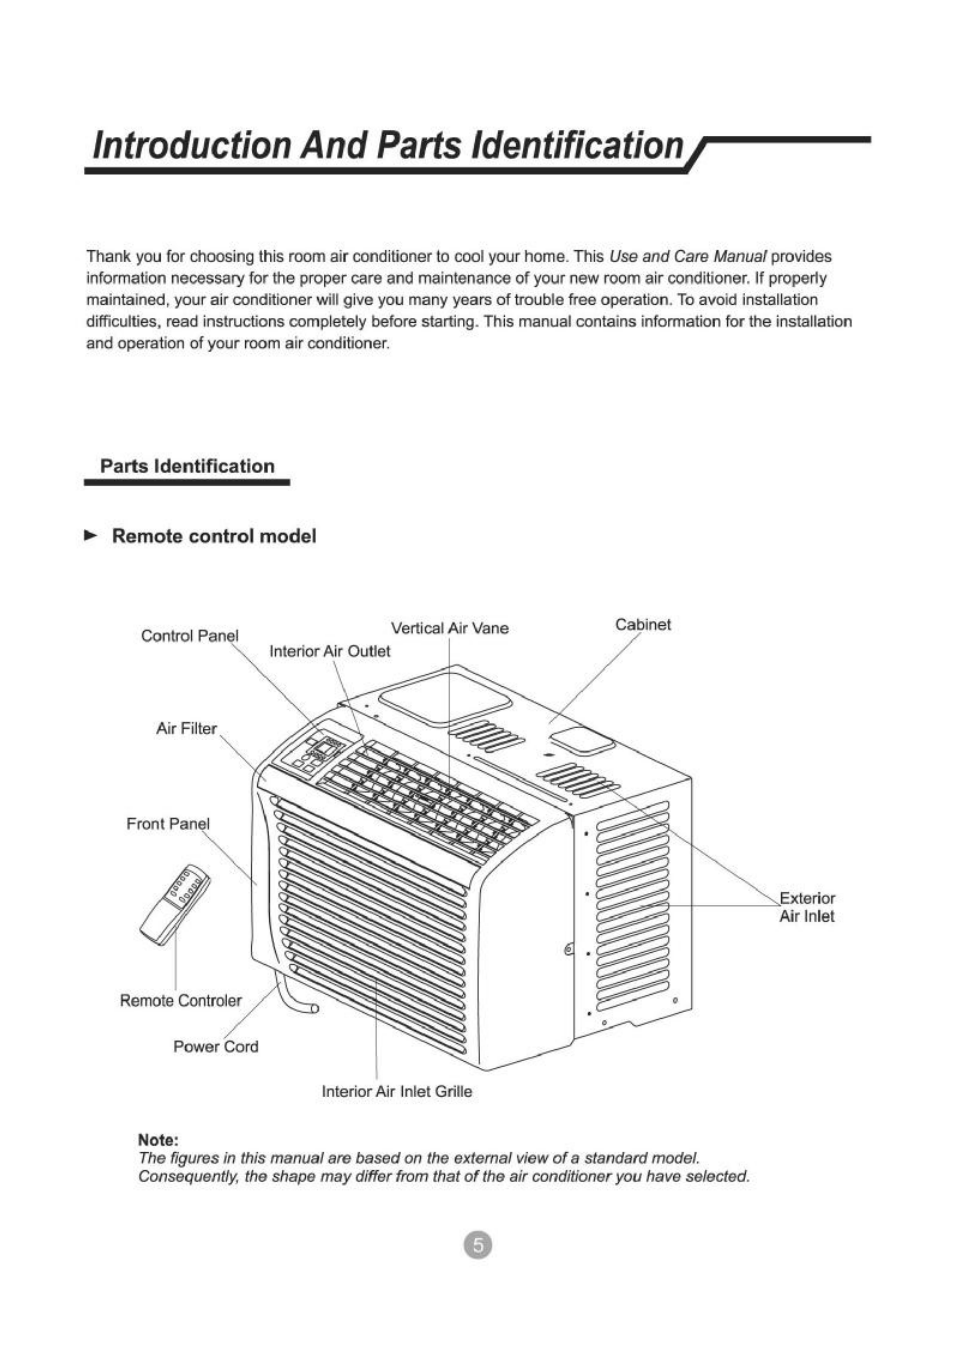 admiral portable air conditioner manual aap 09ck1fa page 2 3 Array -  introduction and parts identification parts identification remote rh  manualsdir com